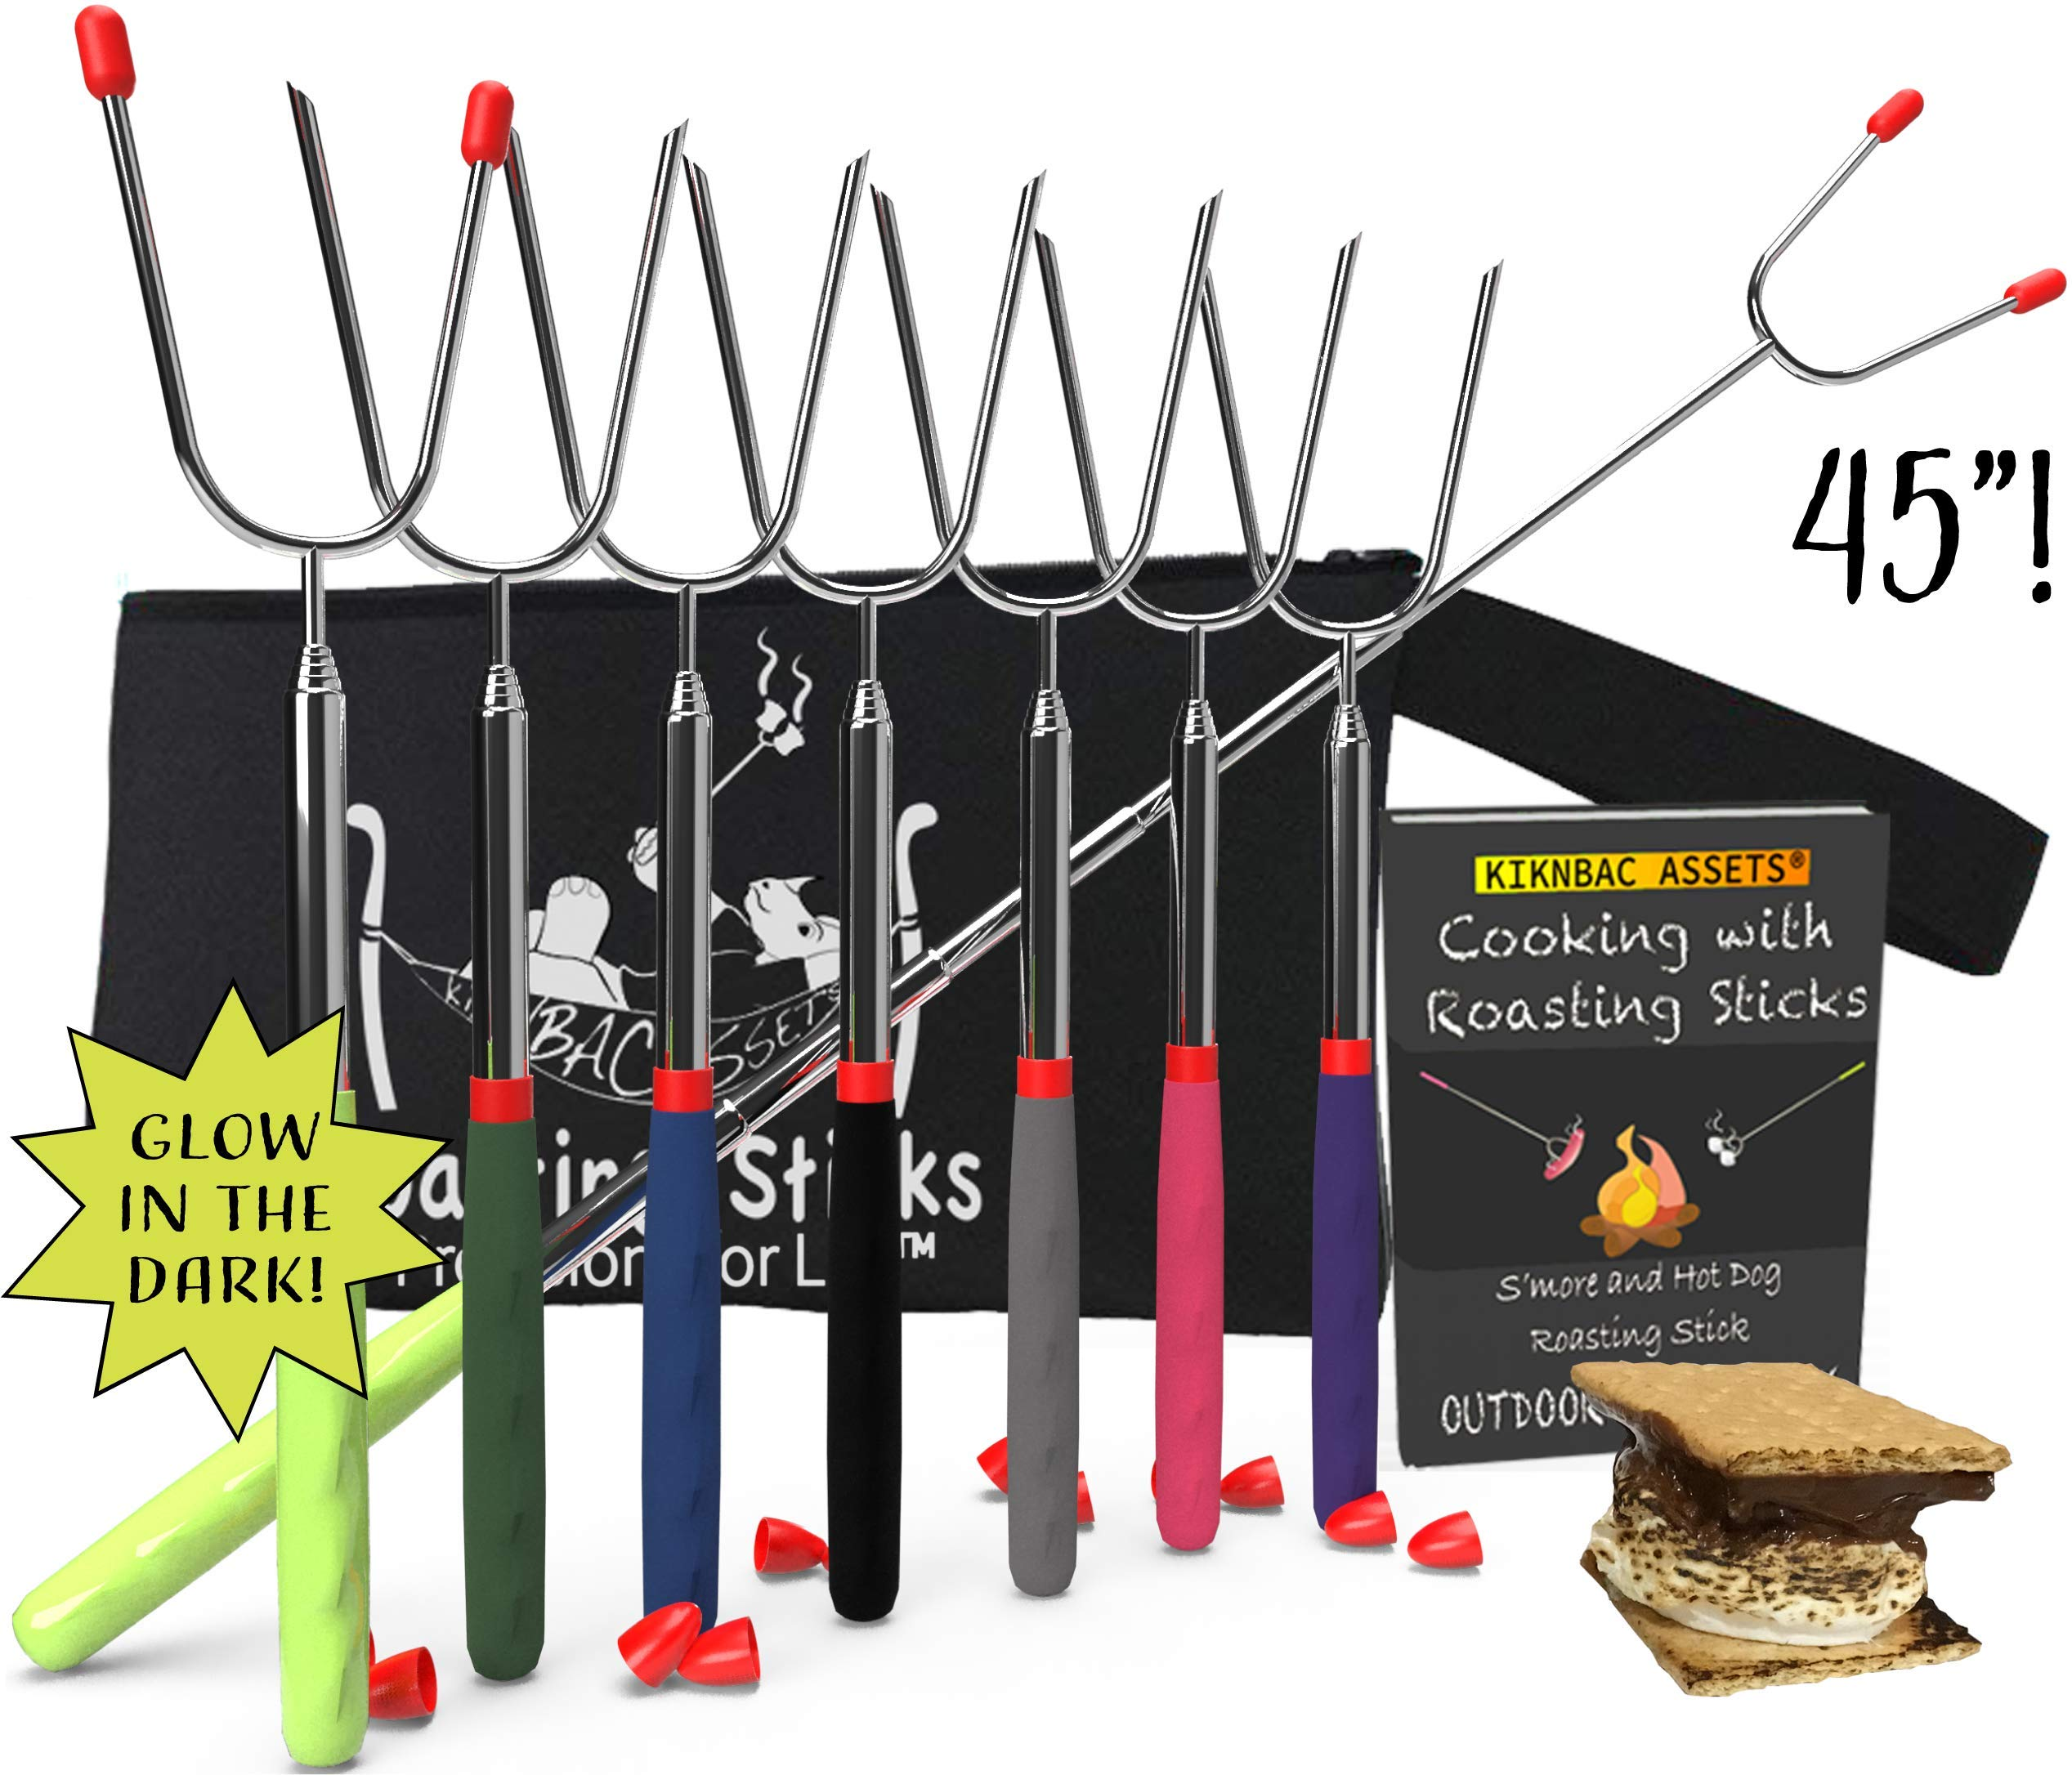 KBA Marshmallow Roasting Sticks 45'' Long | Set of 8 | Telescoping Smores Sticks for Fire Pit 6 Colors and 2 Glow in The Dark, Kids Camping Accessories Kit with E-Book for Campfire Cooking Fun by KBA